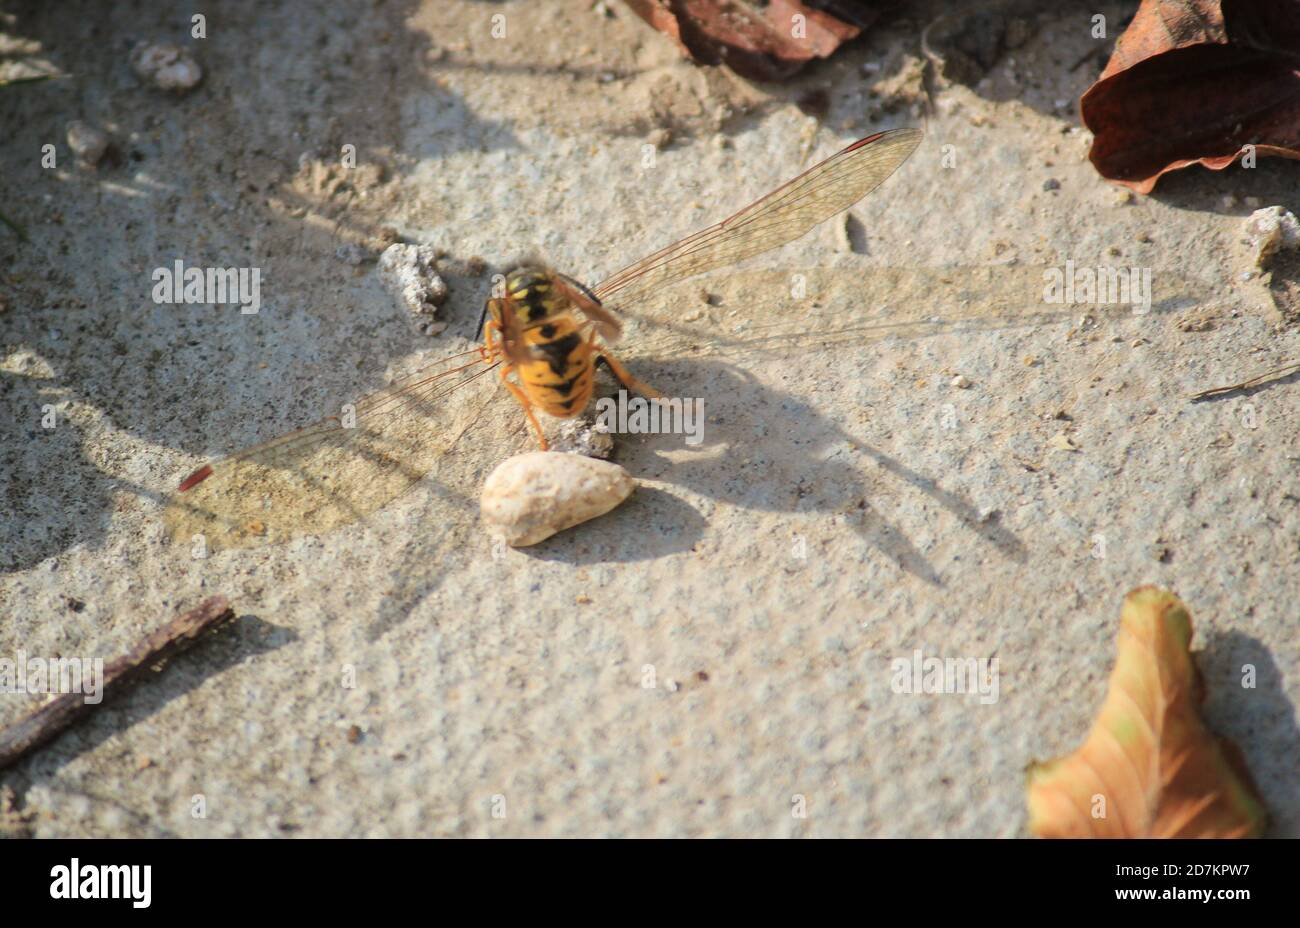 wasp having attacked red darter dragonfly kill or killing is normally something the dragonfly would hunt the wasp Stock Photo